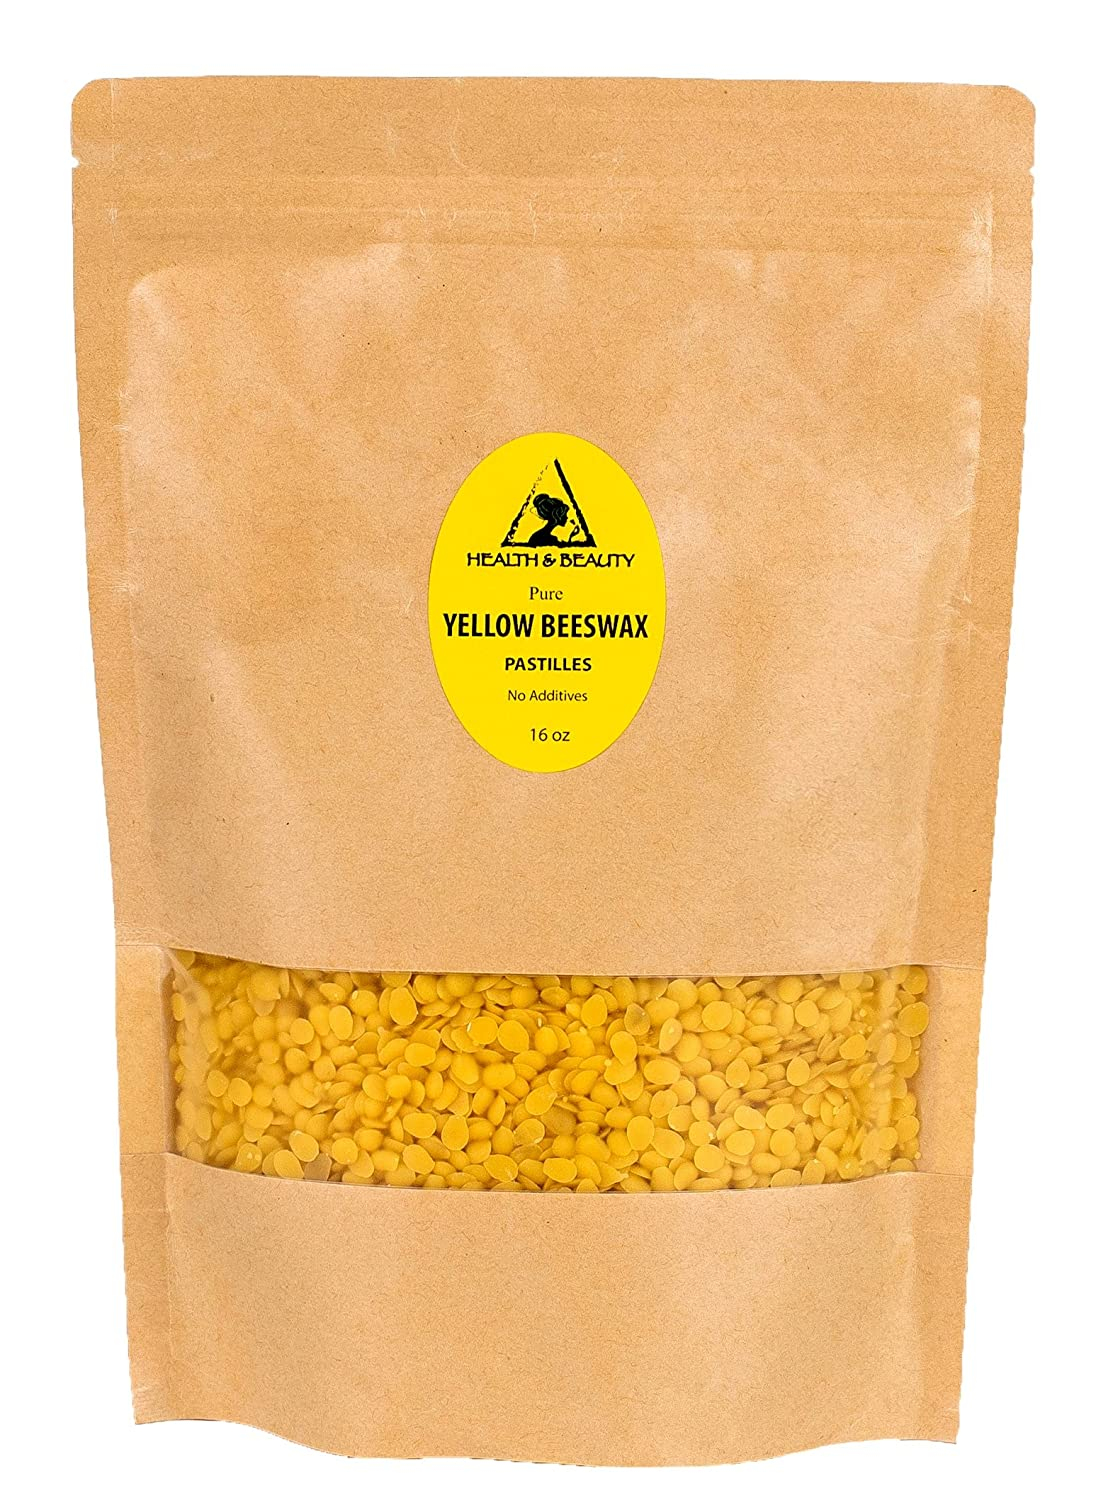 Yellow Beeswax Bees Wax Organic Pastilles Beads 100% Pure 16 oz, 1 LB, 454 g H&B Oils Center Co. 4336841585